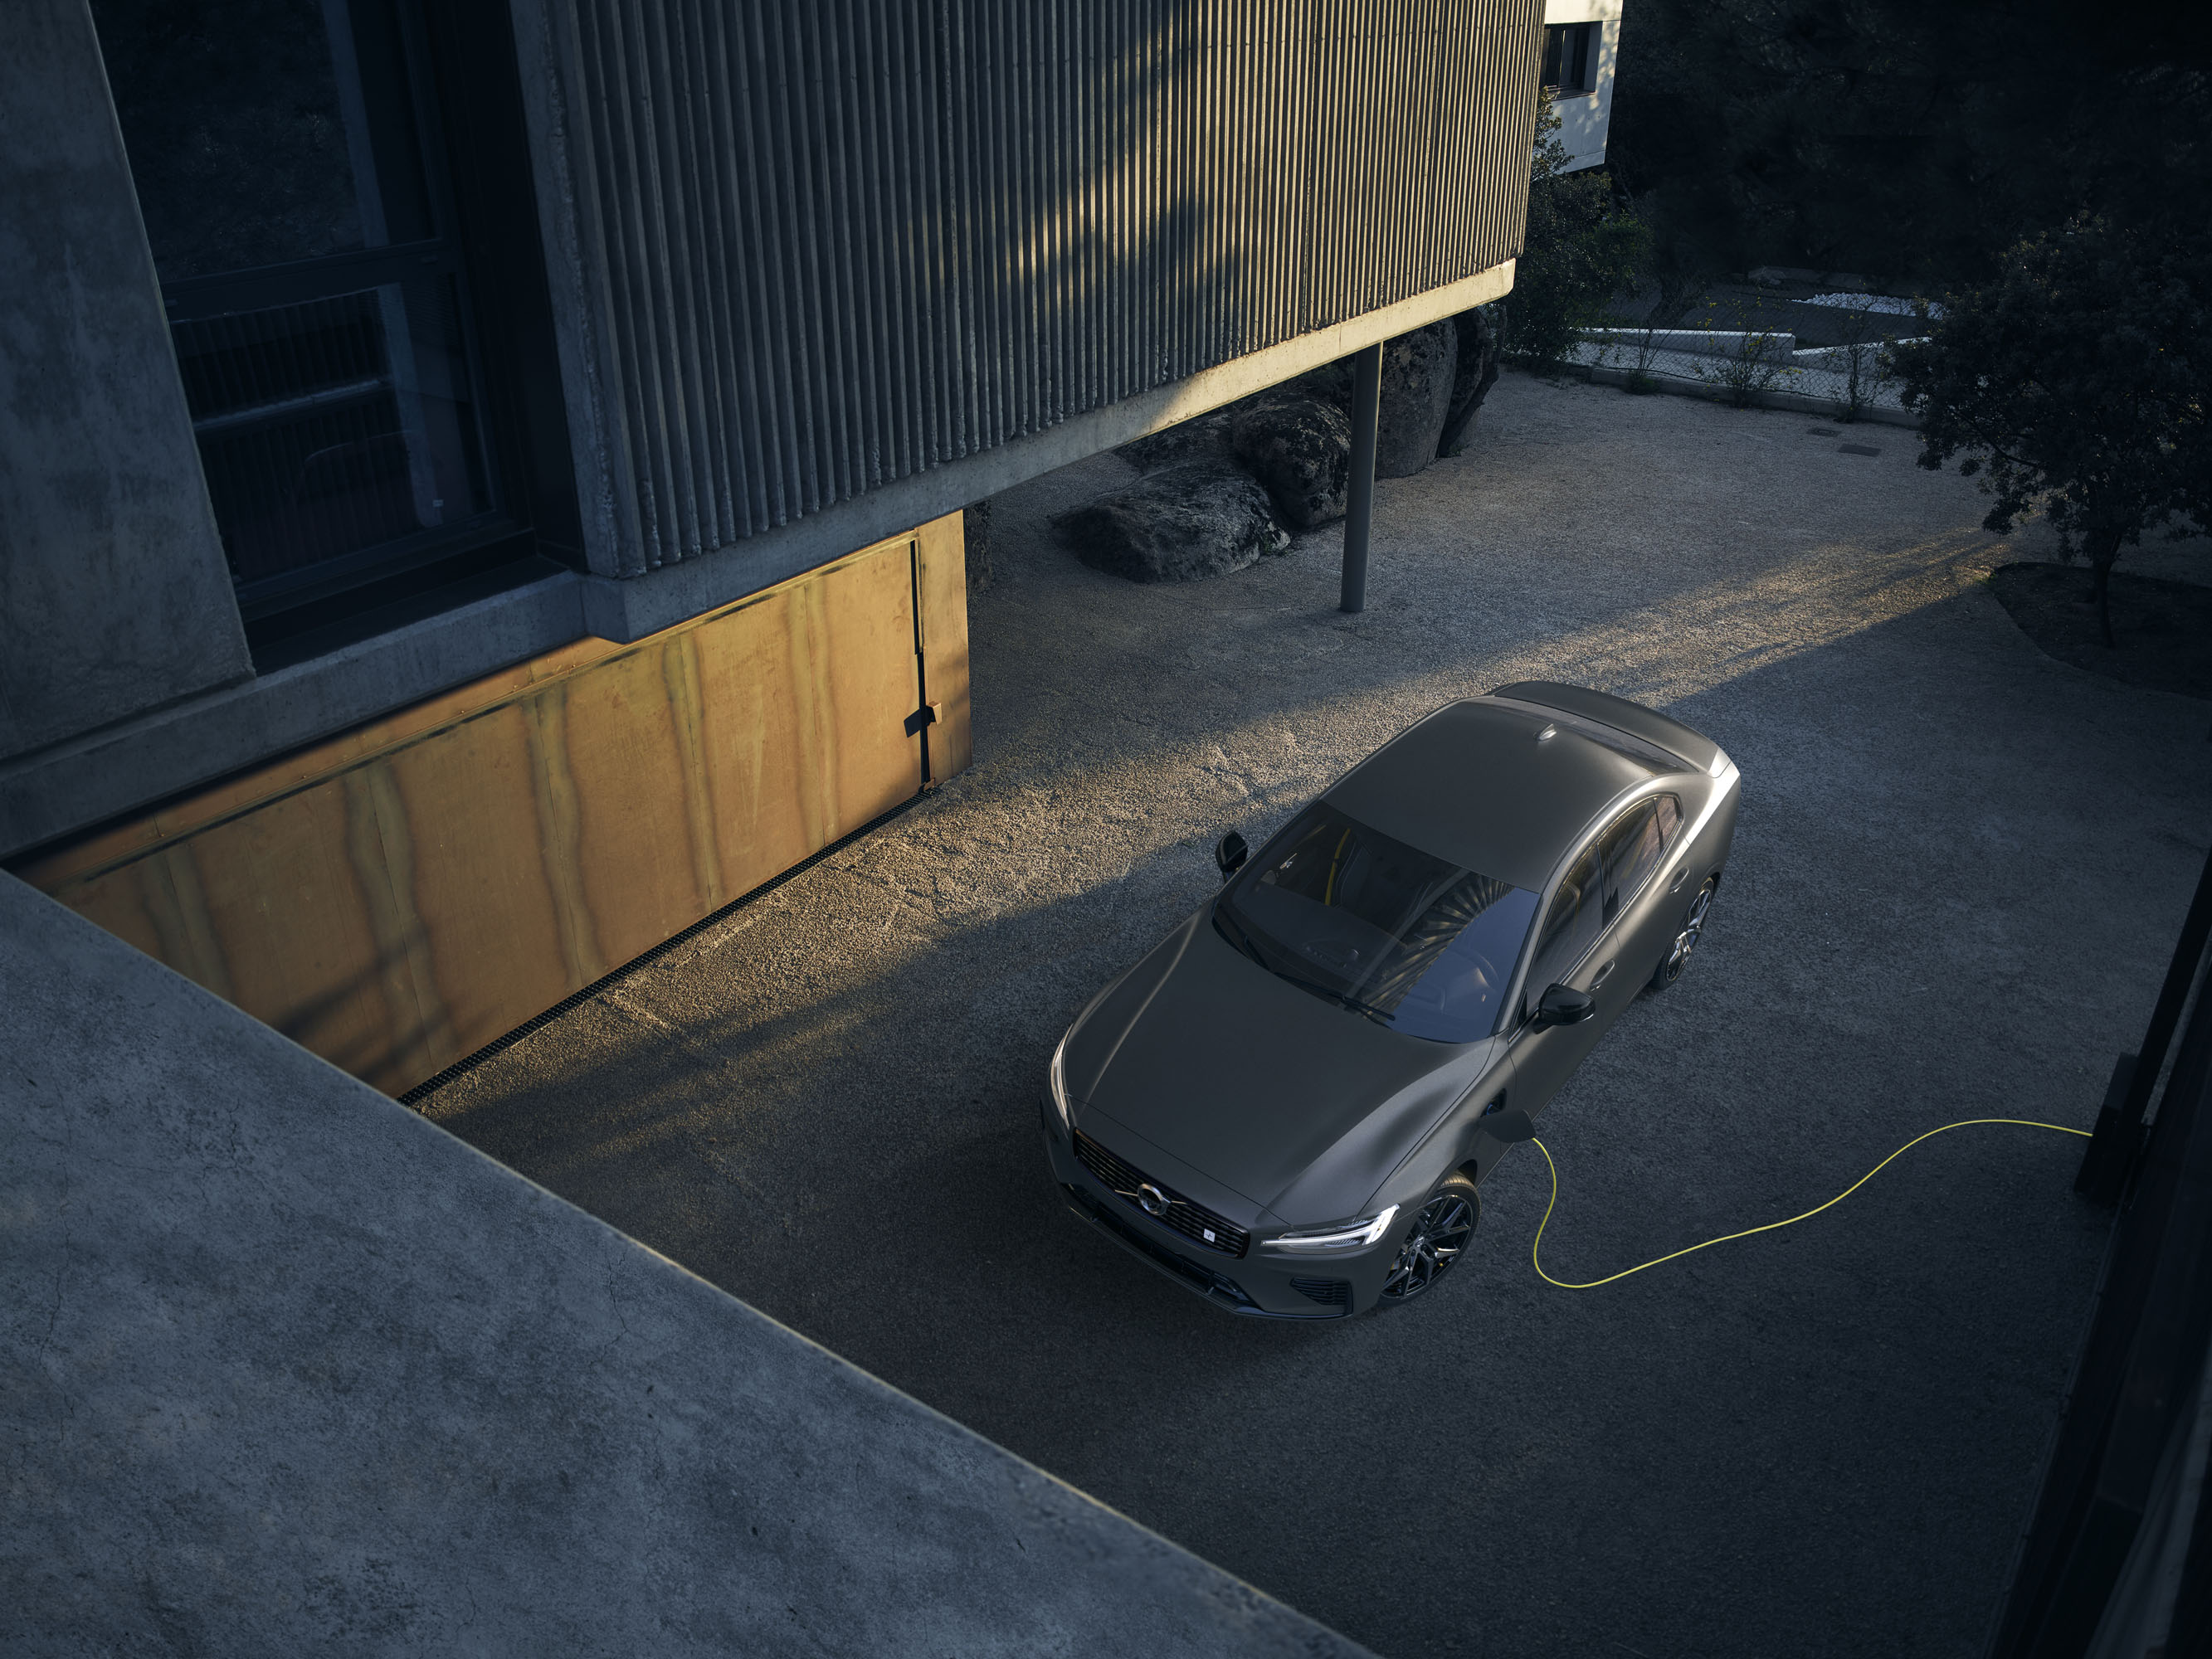 2019 Volvo S60 Polestar in grey charging